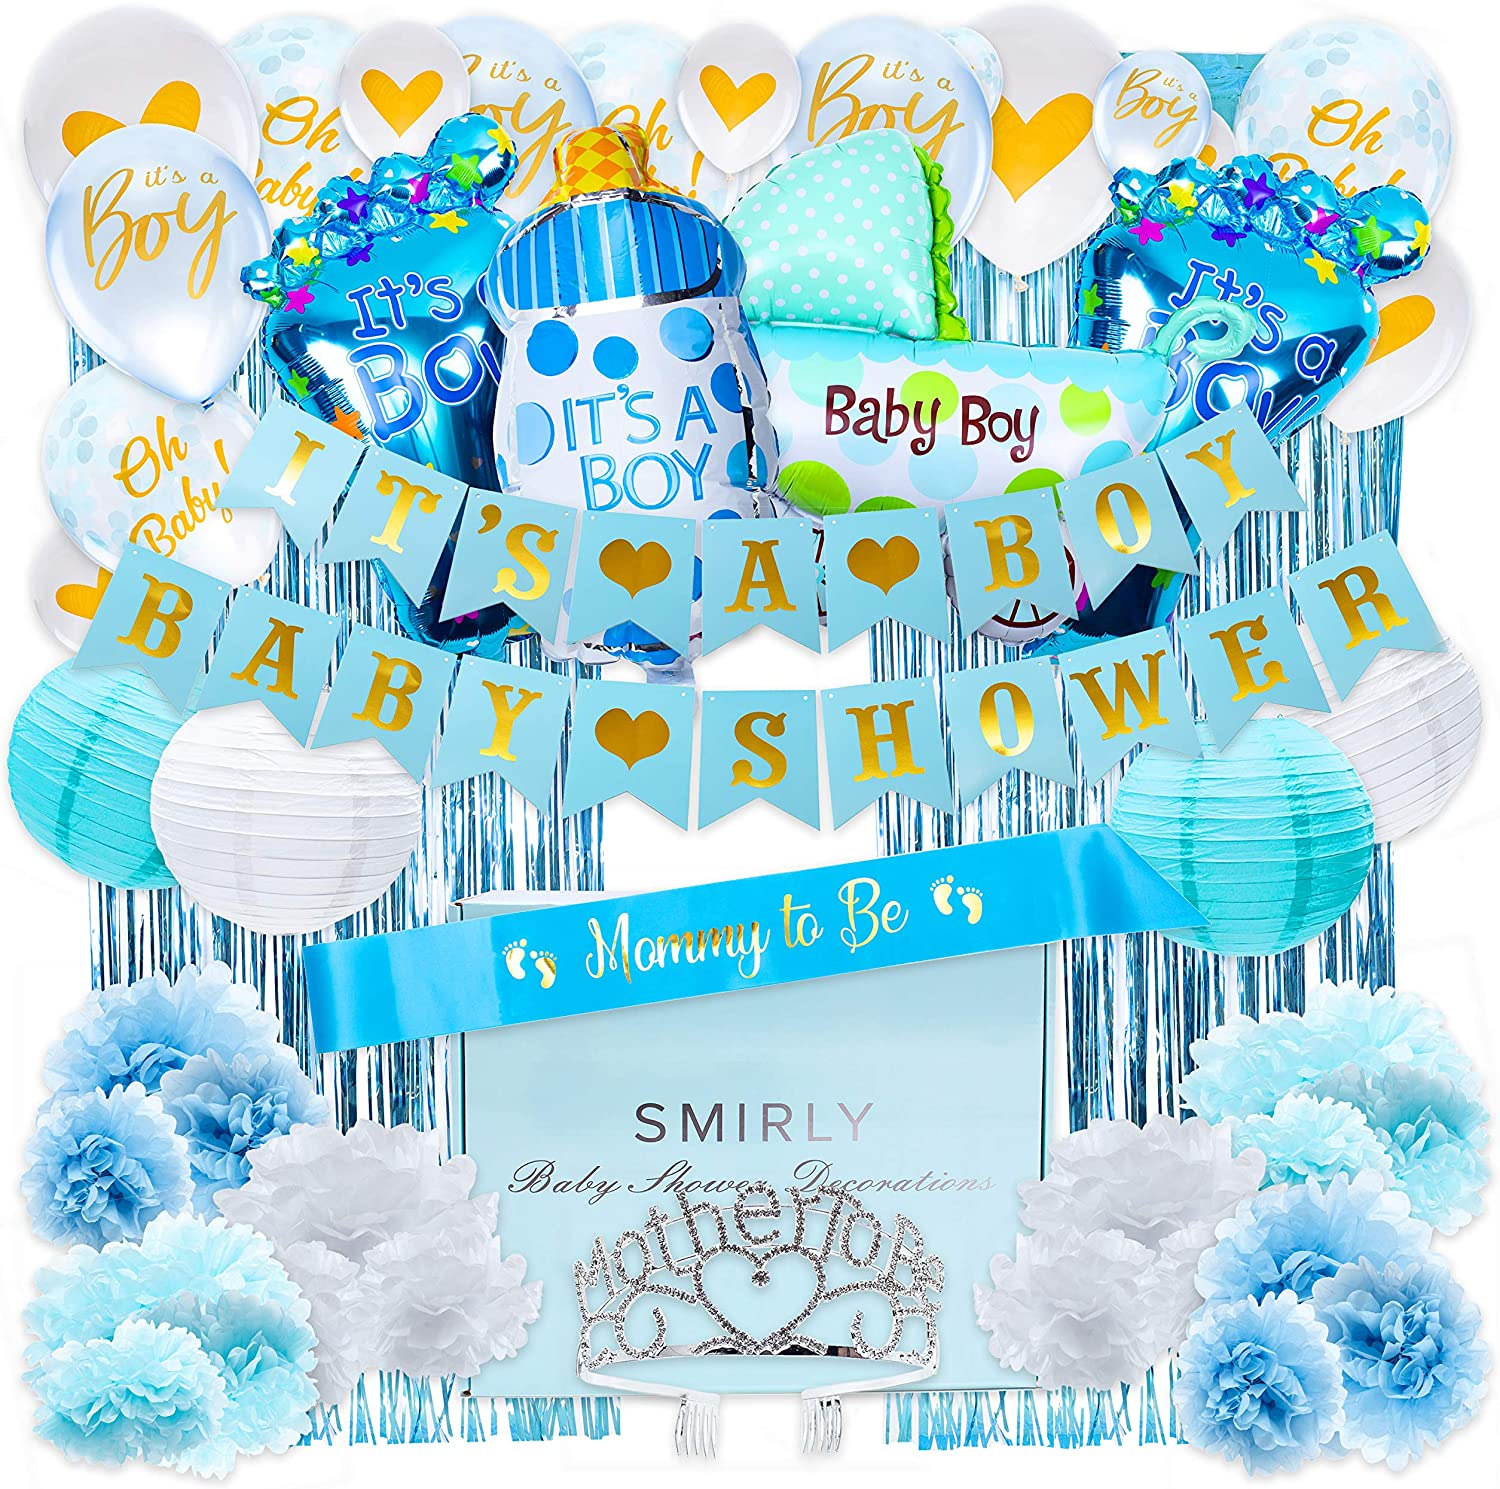 Baby Shower Decorations for Boy Kit: Boys Baby Shower Party Supplies Bundle with Blue, White, and Gold Themed Decor - It's A Boy Party Pack Includes Banner, Balloons, Curtains, Pom Poms and More